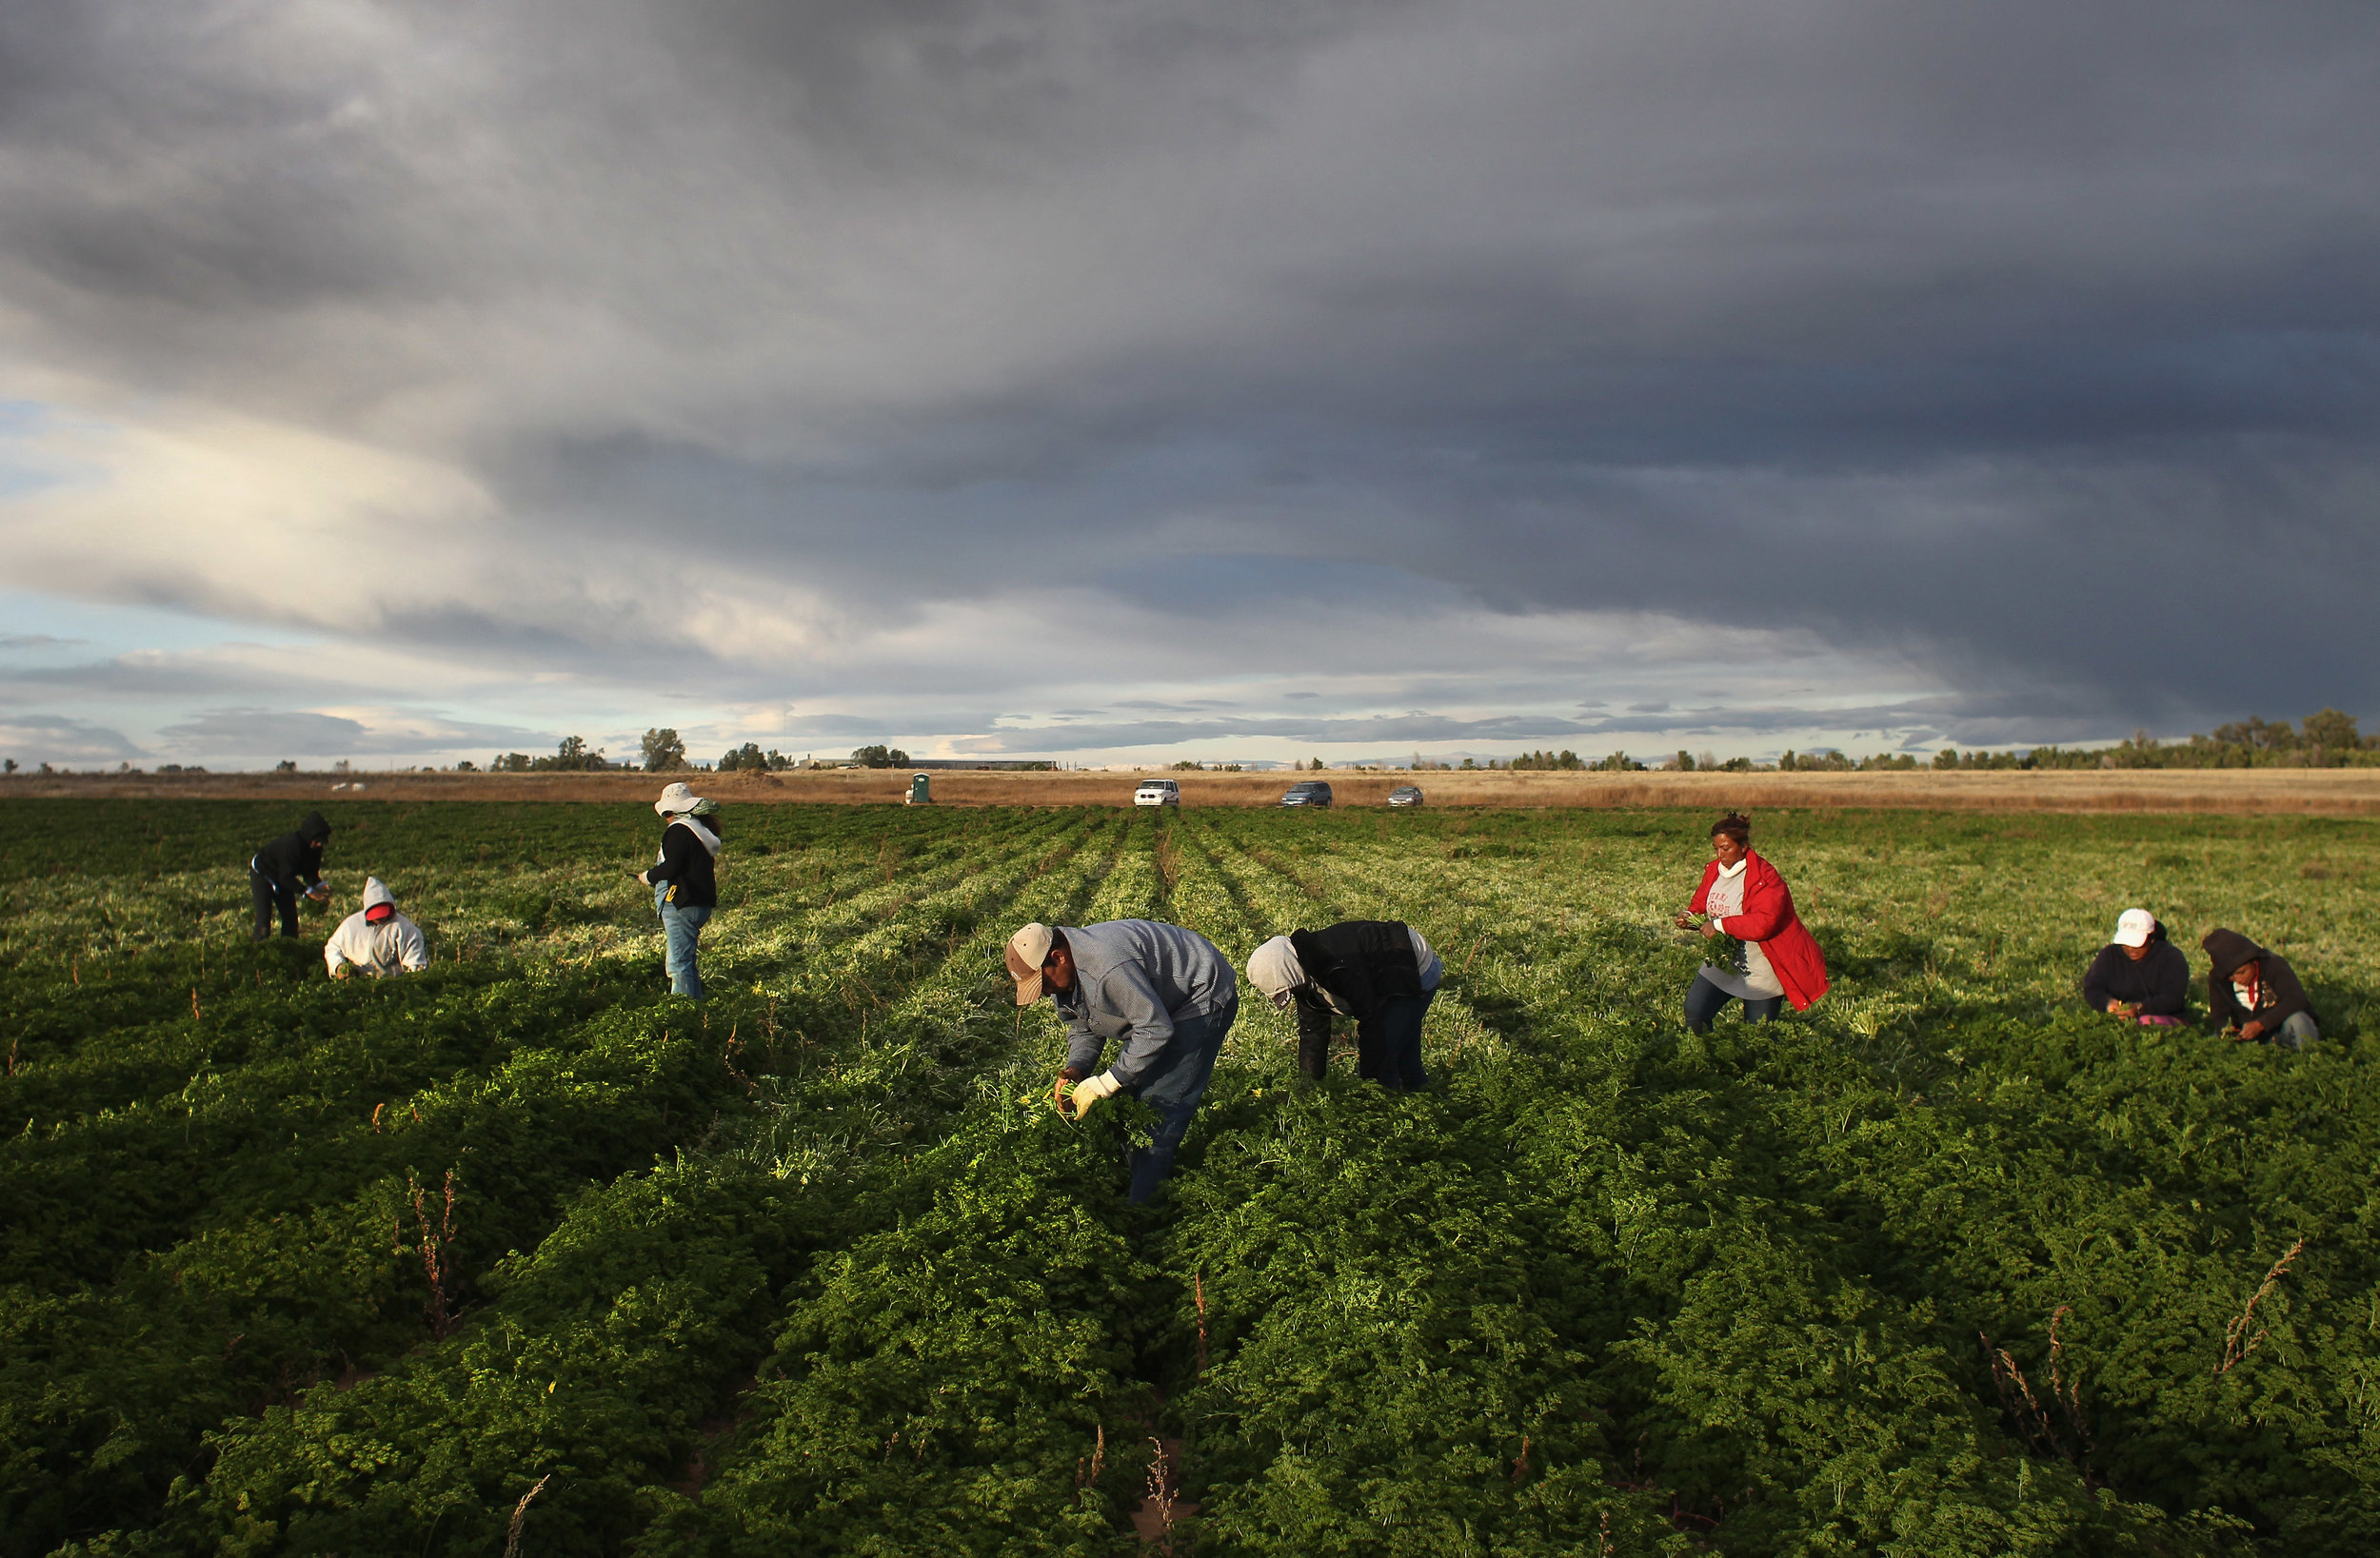 Colorado Farm Suffers As Immigrant Workforce Diminishes Photo by John Moore/Getty Images